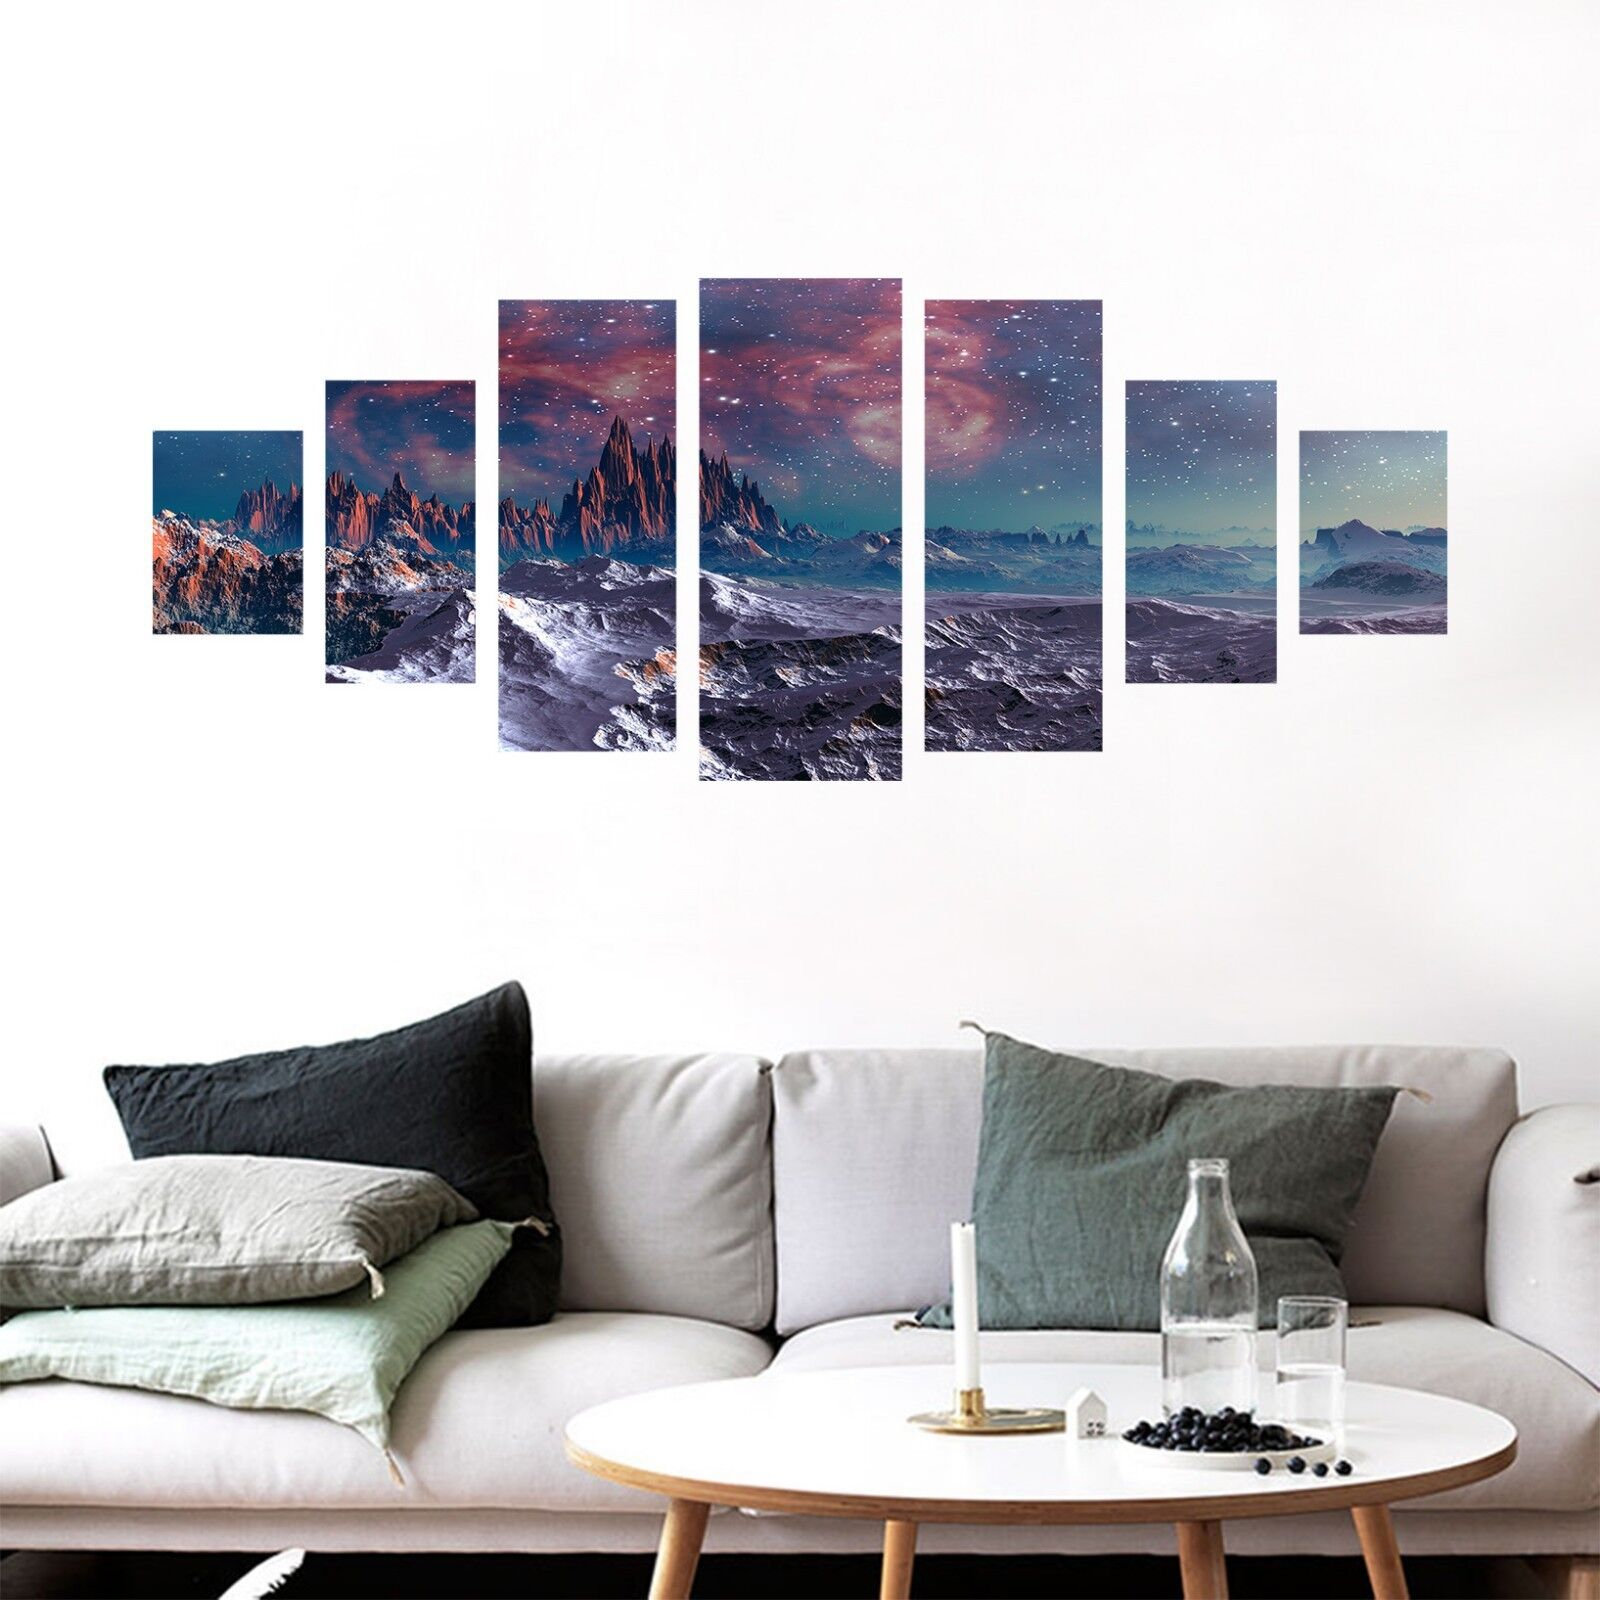 3D Mountain 754 Unframed Print Wall Paper Decal Wall Deco Indoor AJ Wall Jenny